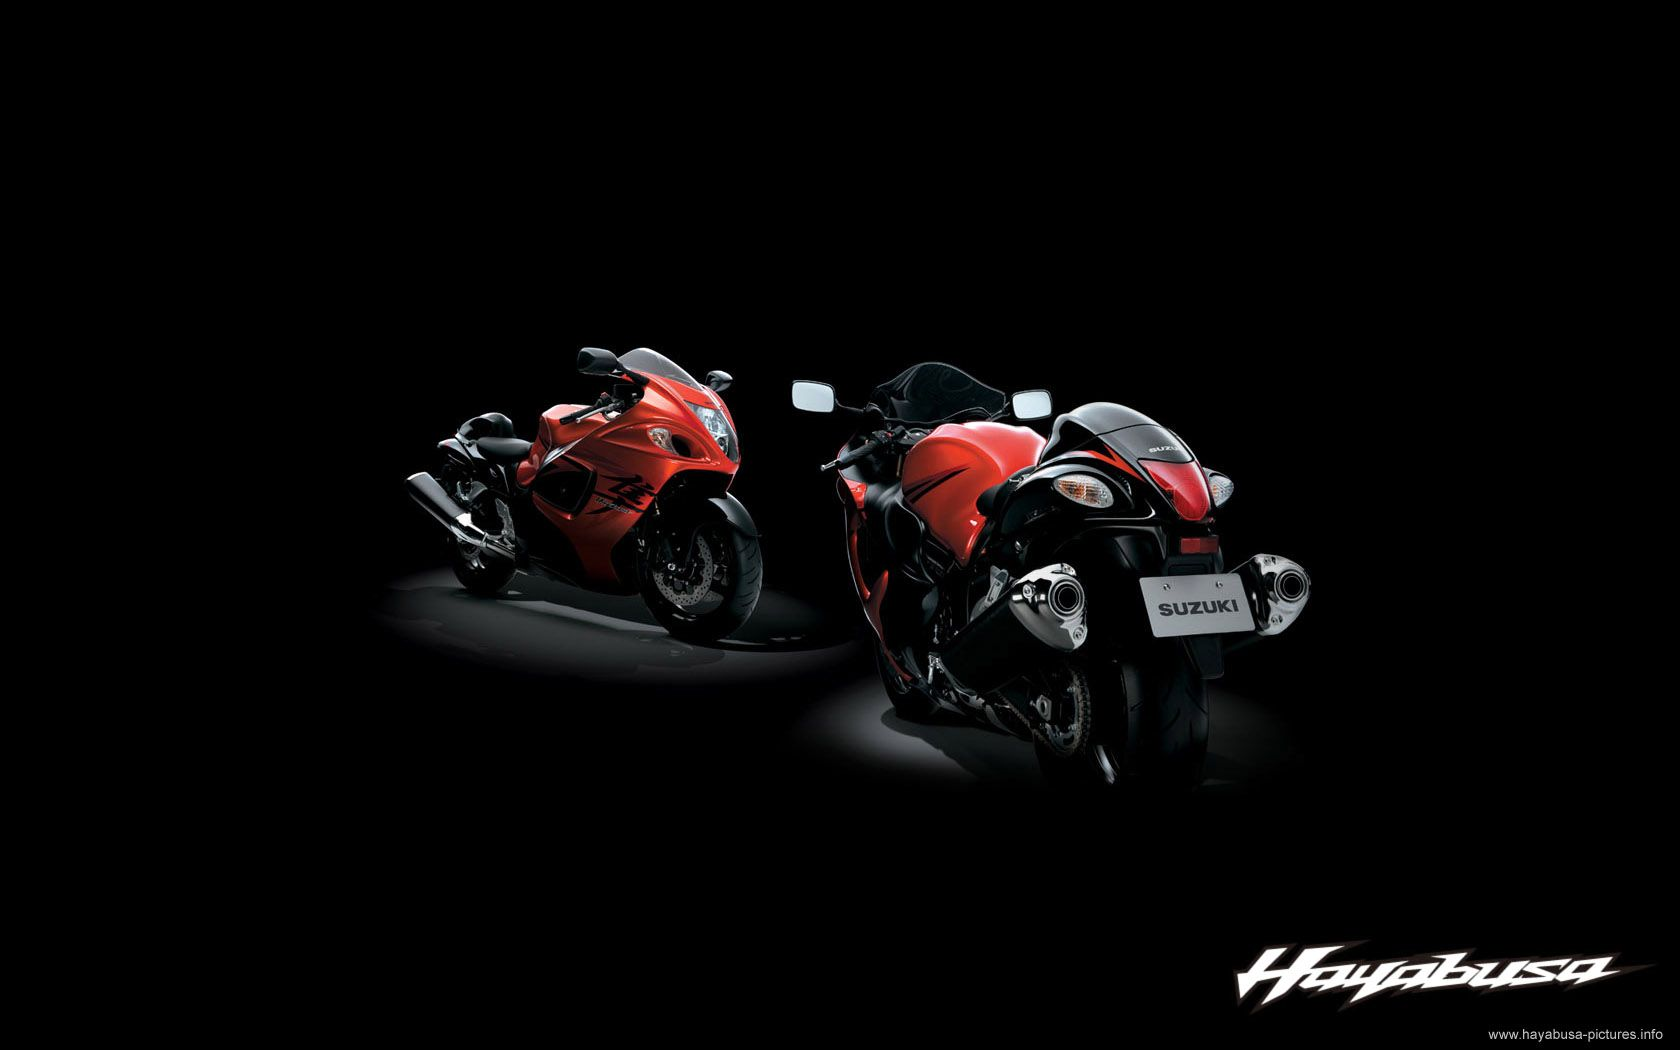 Etonnant Suzuki Hayabusa Widescreen Background | Motorcycle | Pinterest | Suzuki  Hayabusa